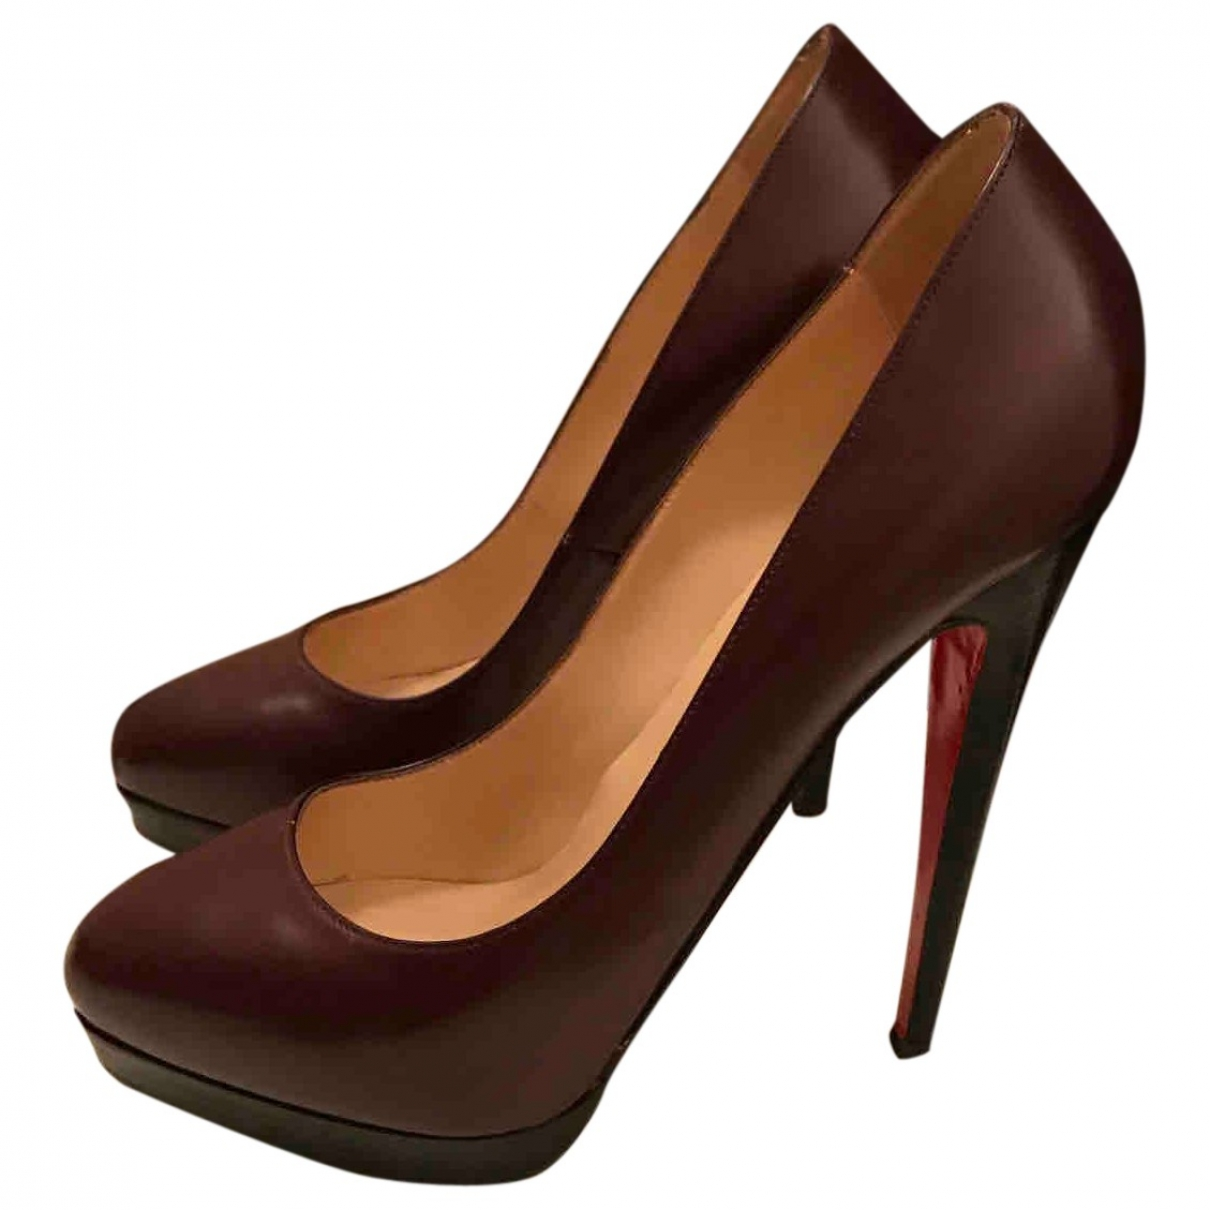 Christian Louboutin \N Burgundy Leather Heels for Women 39.5 EU